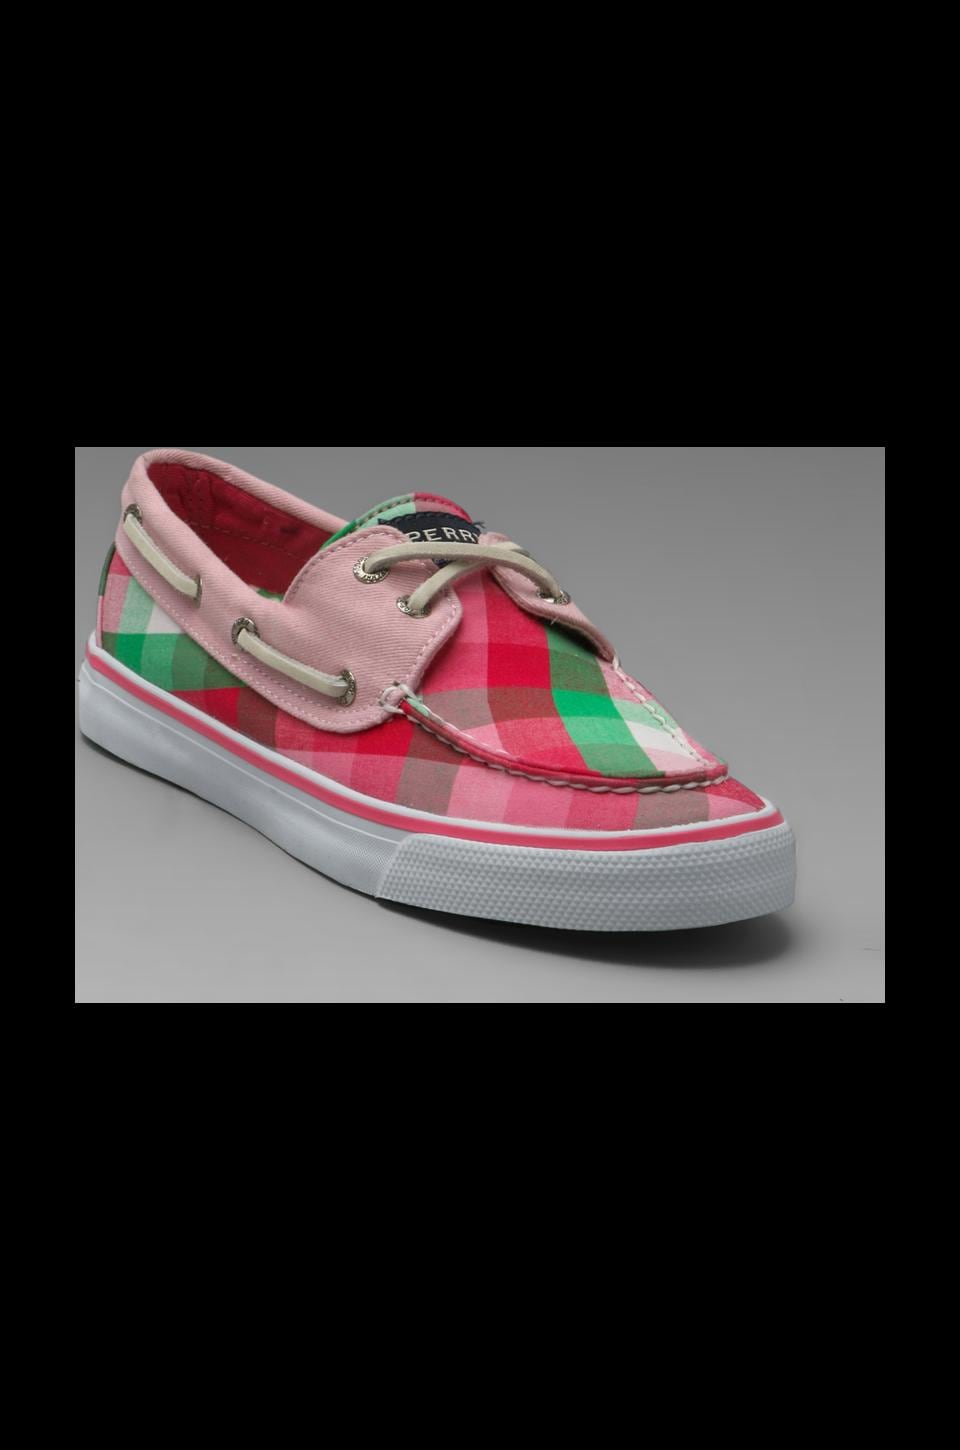 Sperry Top-Sider Bahama 2-Eye in Pink/Green